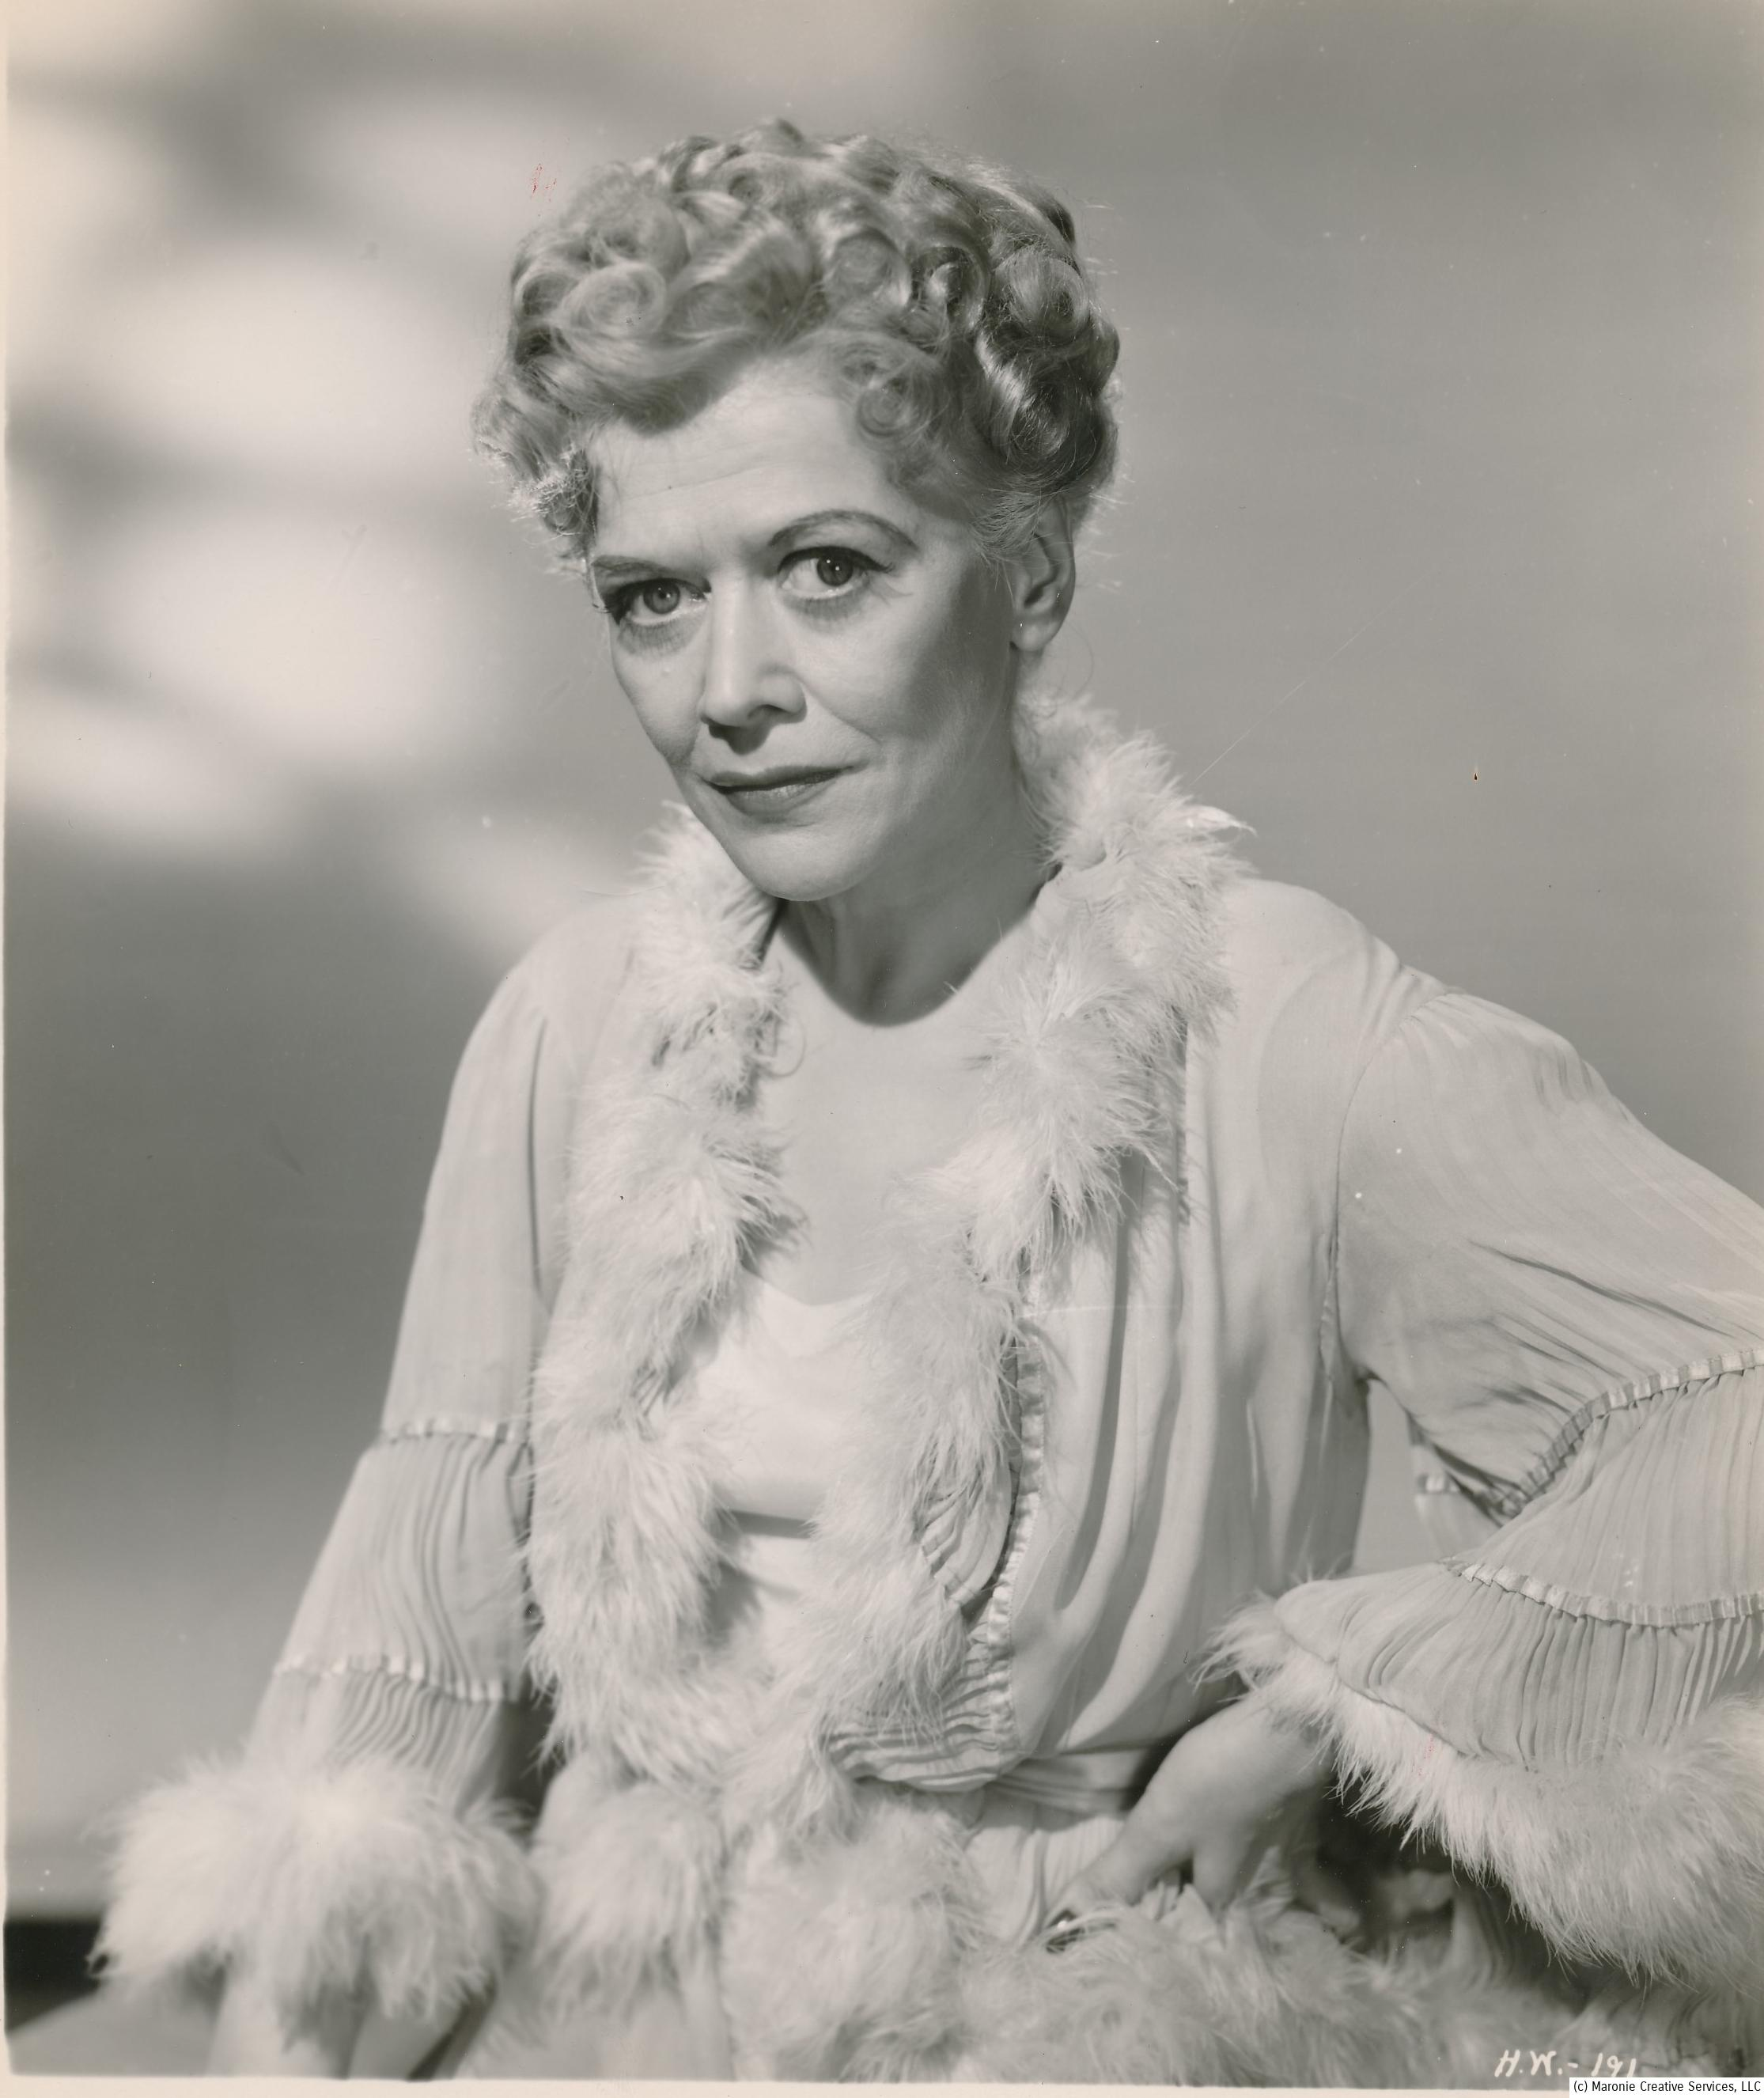 Gladys George always played hard-hearted dames in her screen roles. She's noted for her portrayal of Iva Archer in The Maltese Falcon; she was 'grieving' widow of Bogie's murdered partner who had the hots for Sam Spade. Other tough-gal performances were featured in The Roaring Twenties, Flamingo Road and Detective Story.